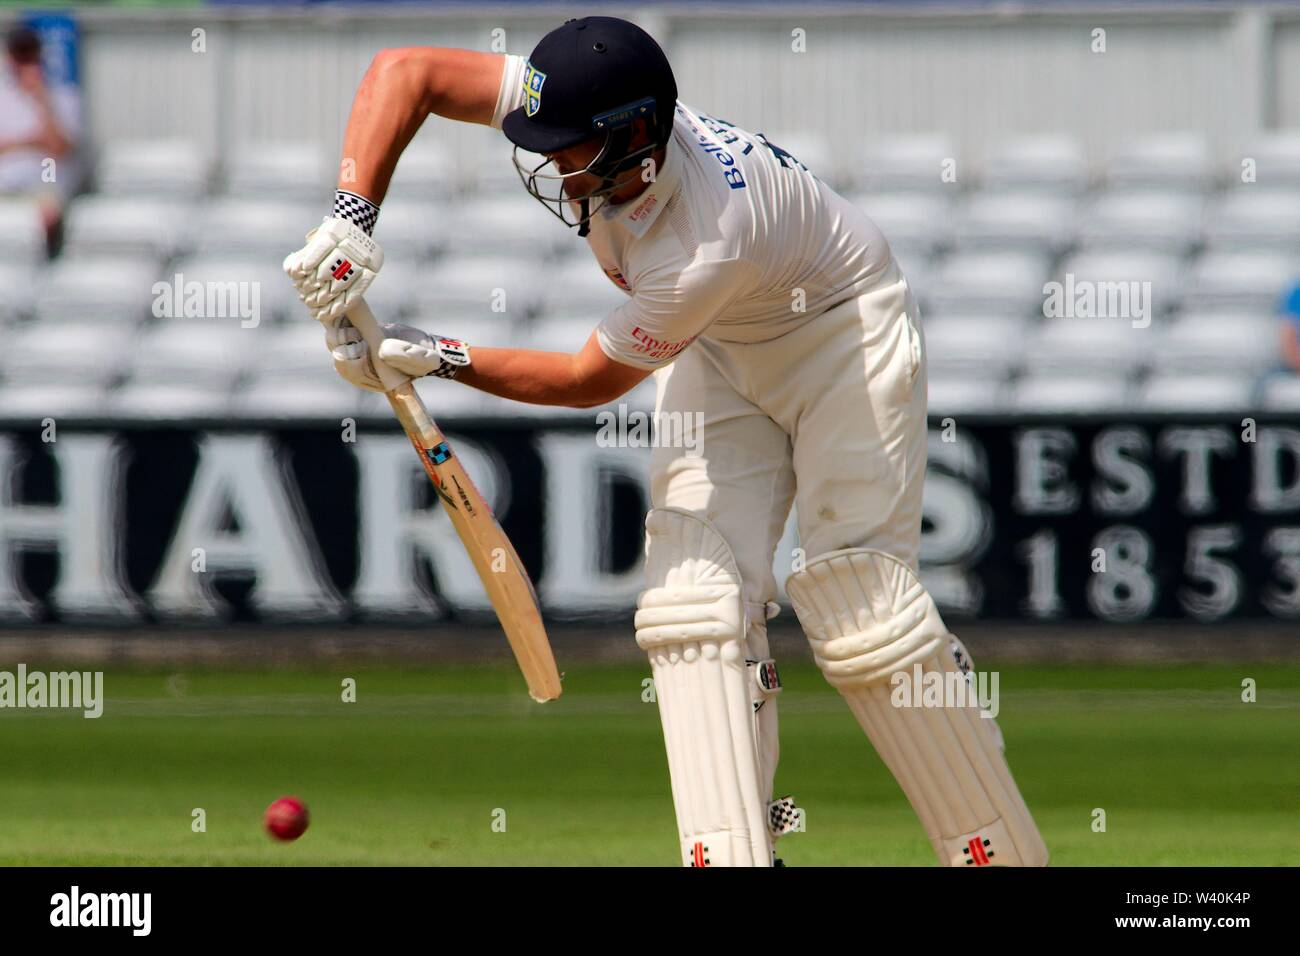 Chester le Street, England, 15 July 2019. Alex Lees batting for Durham during their Specsavers County Championship match between Durham and Worcestershire at the Emirates Riverside, Chester le Street. - Stock Image